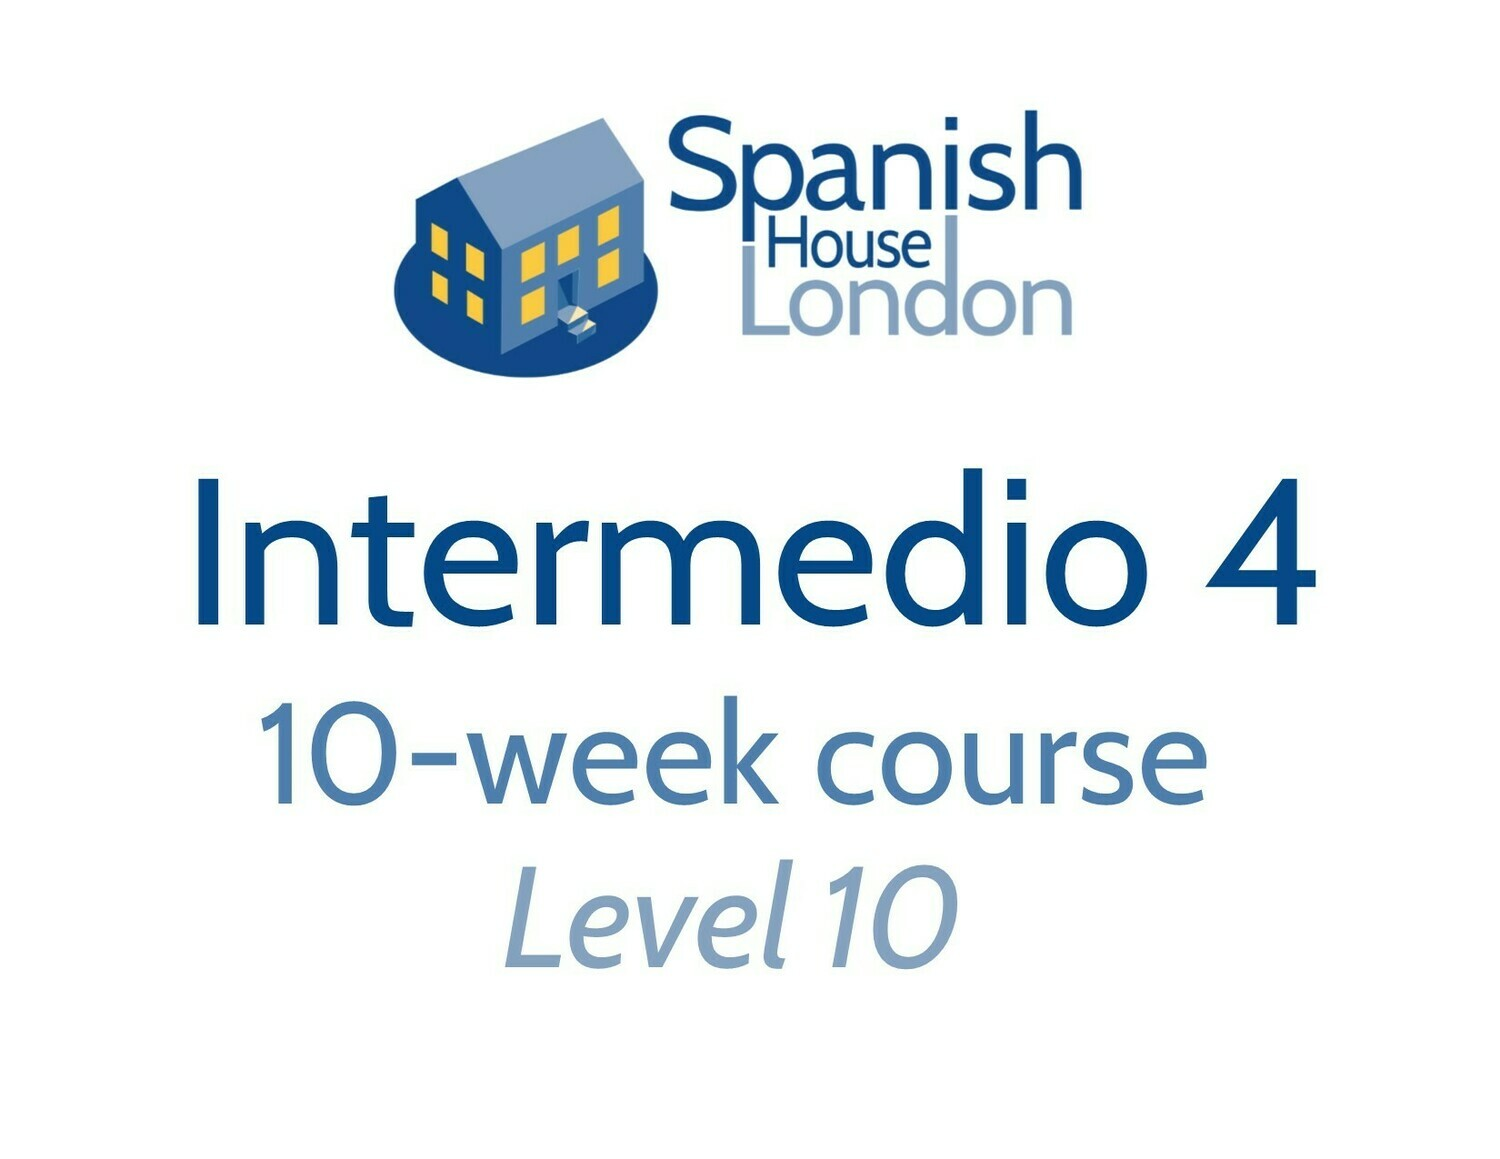 Intermedio 4 Course starting on 5th August at 6pm